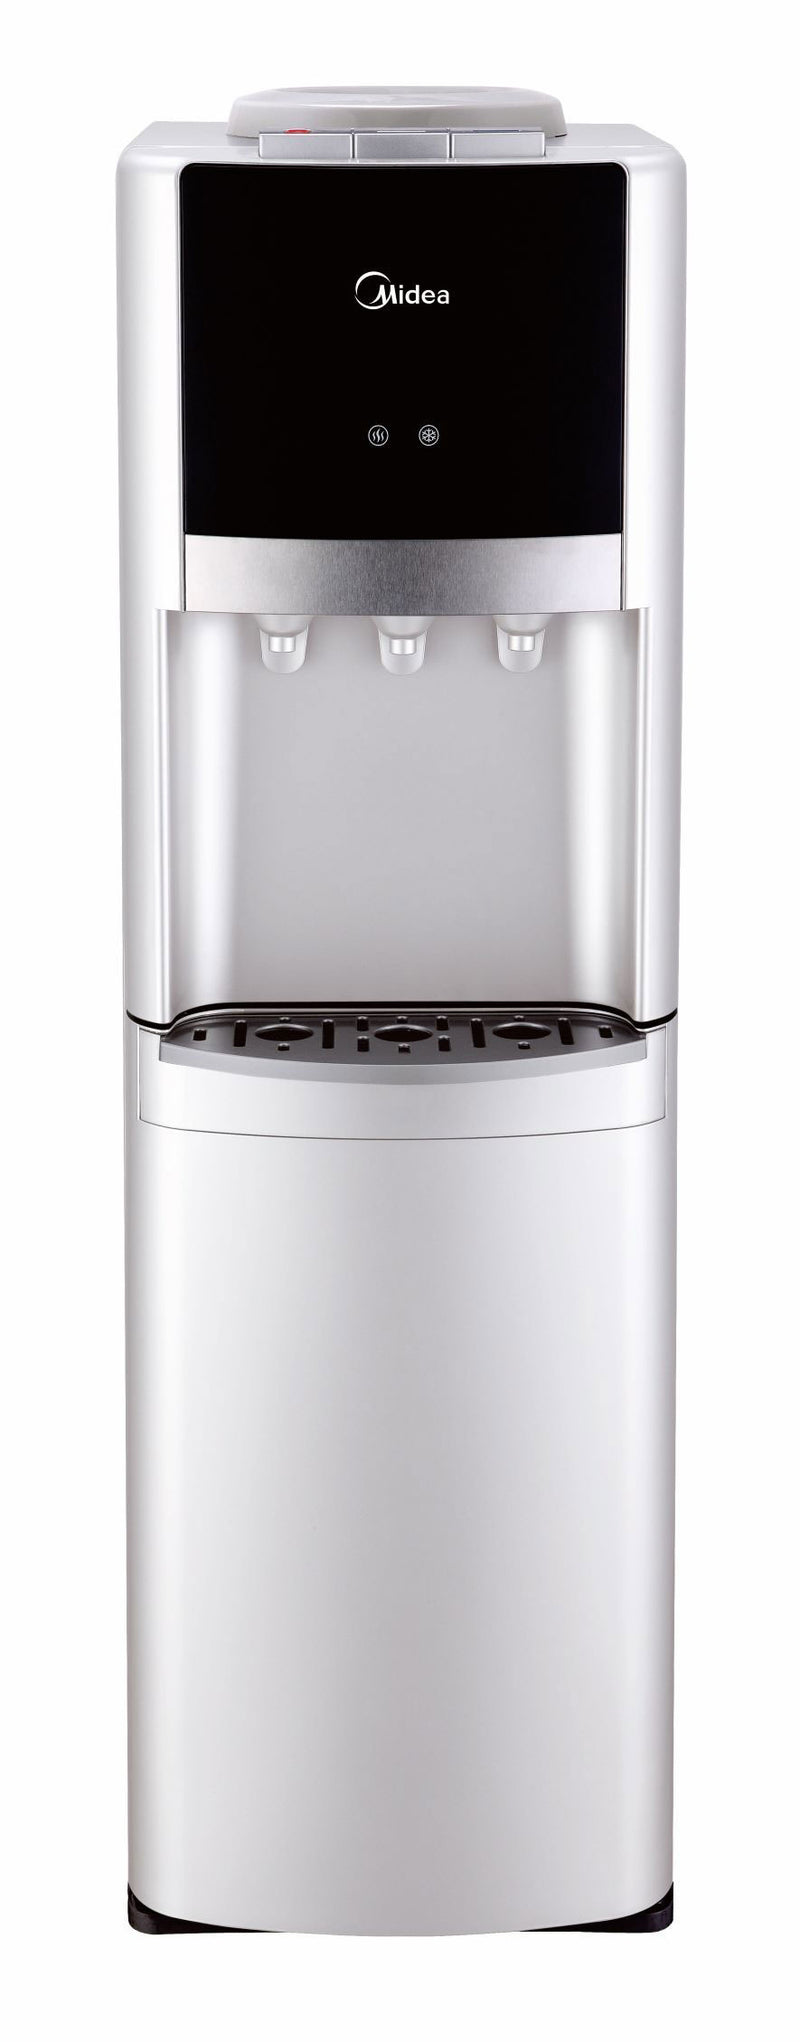 Midea - Water Dispenser 3 Faucets